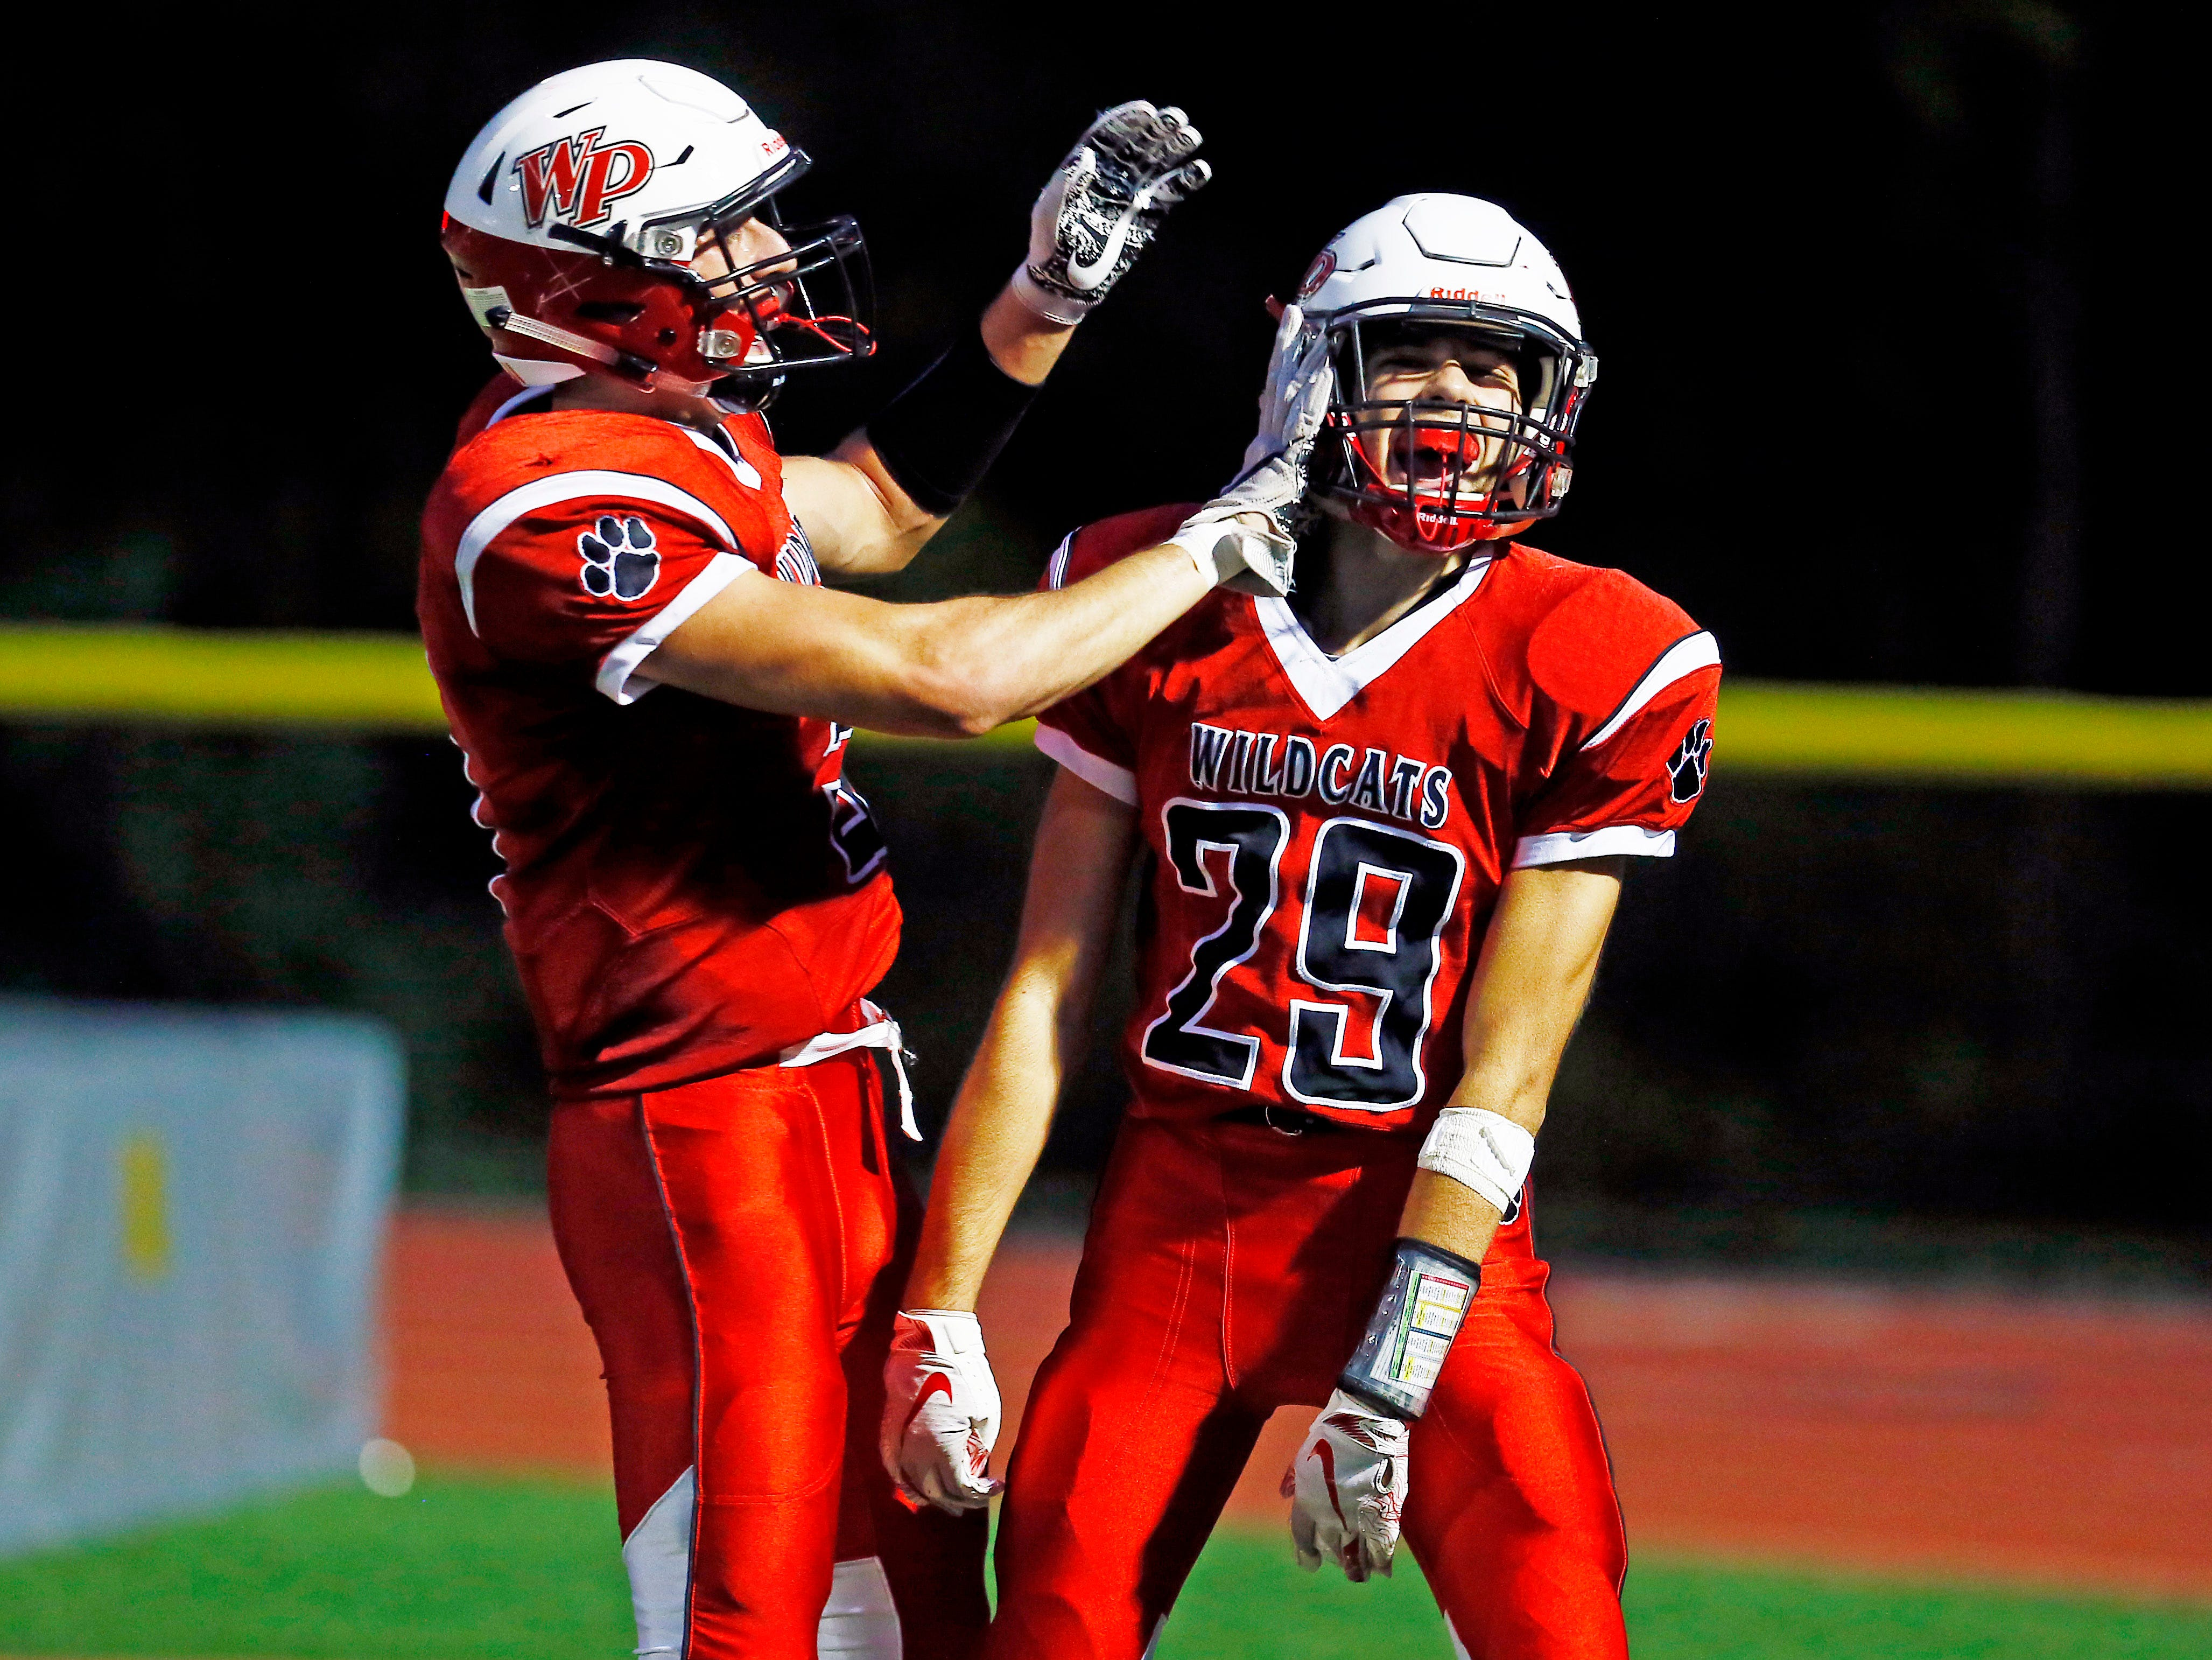 Whippany Park's Cristiano Zipeto (29) celebrates his first half touchdown vs. Boonton during their SFC American Blue Friday night football game. September 21, 2018, Whippany, NJ